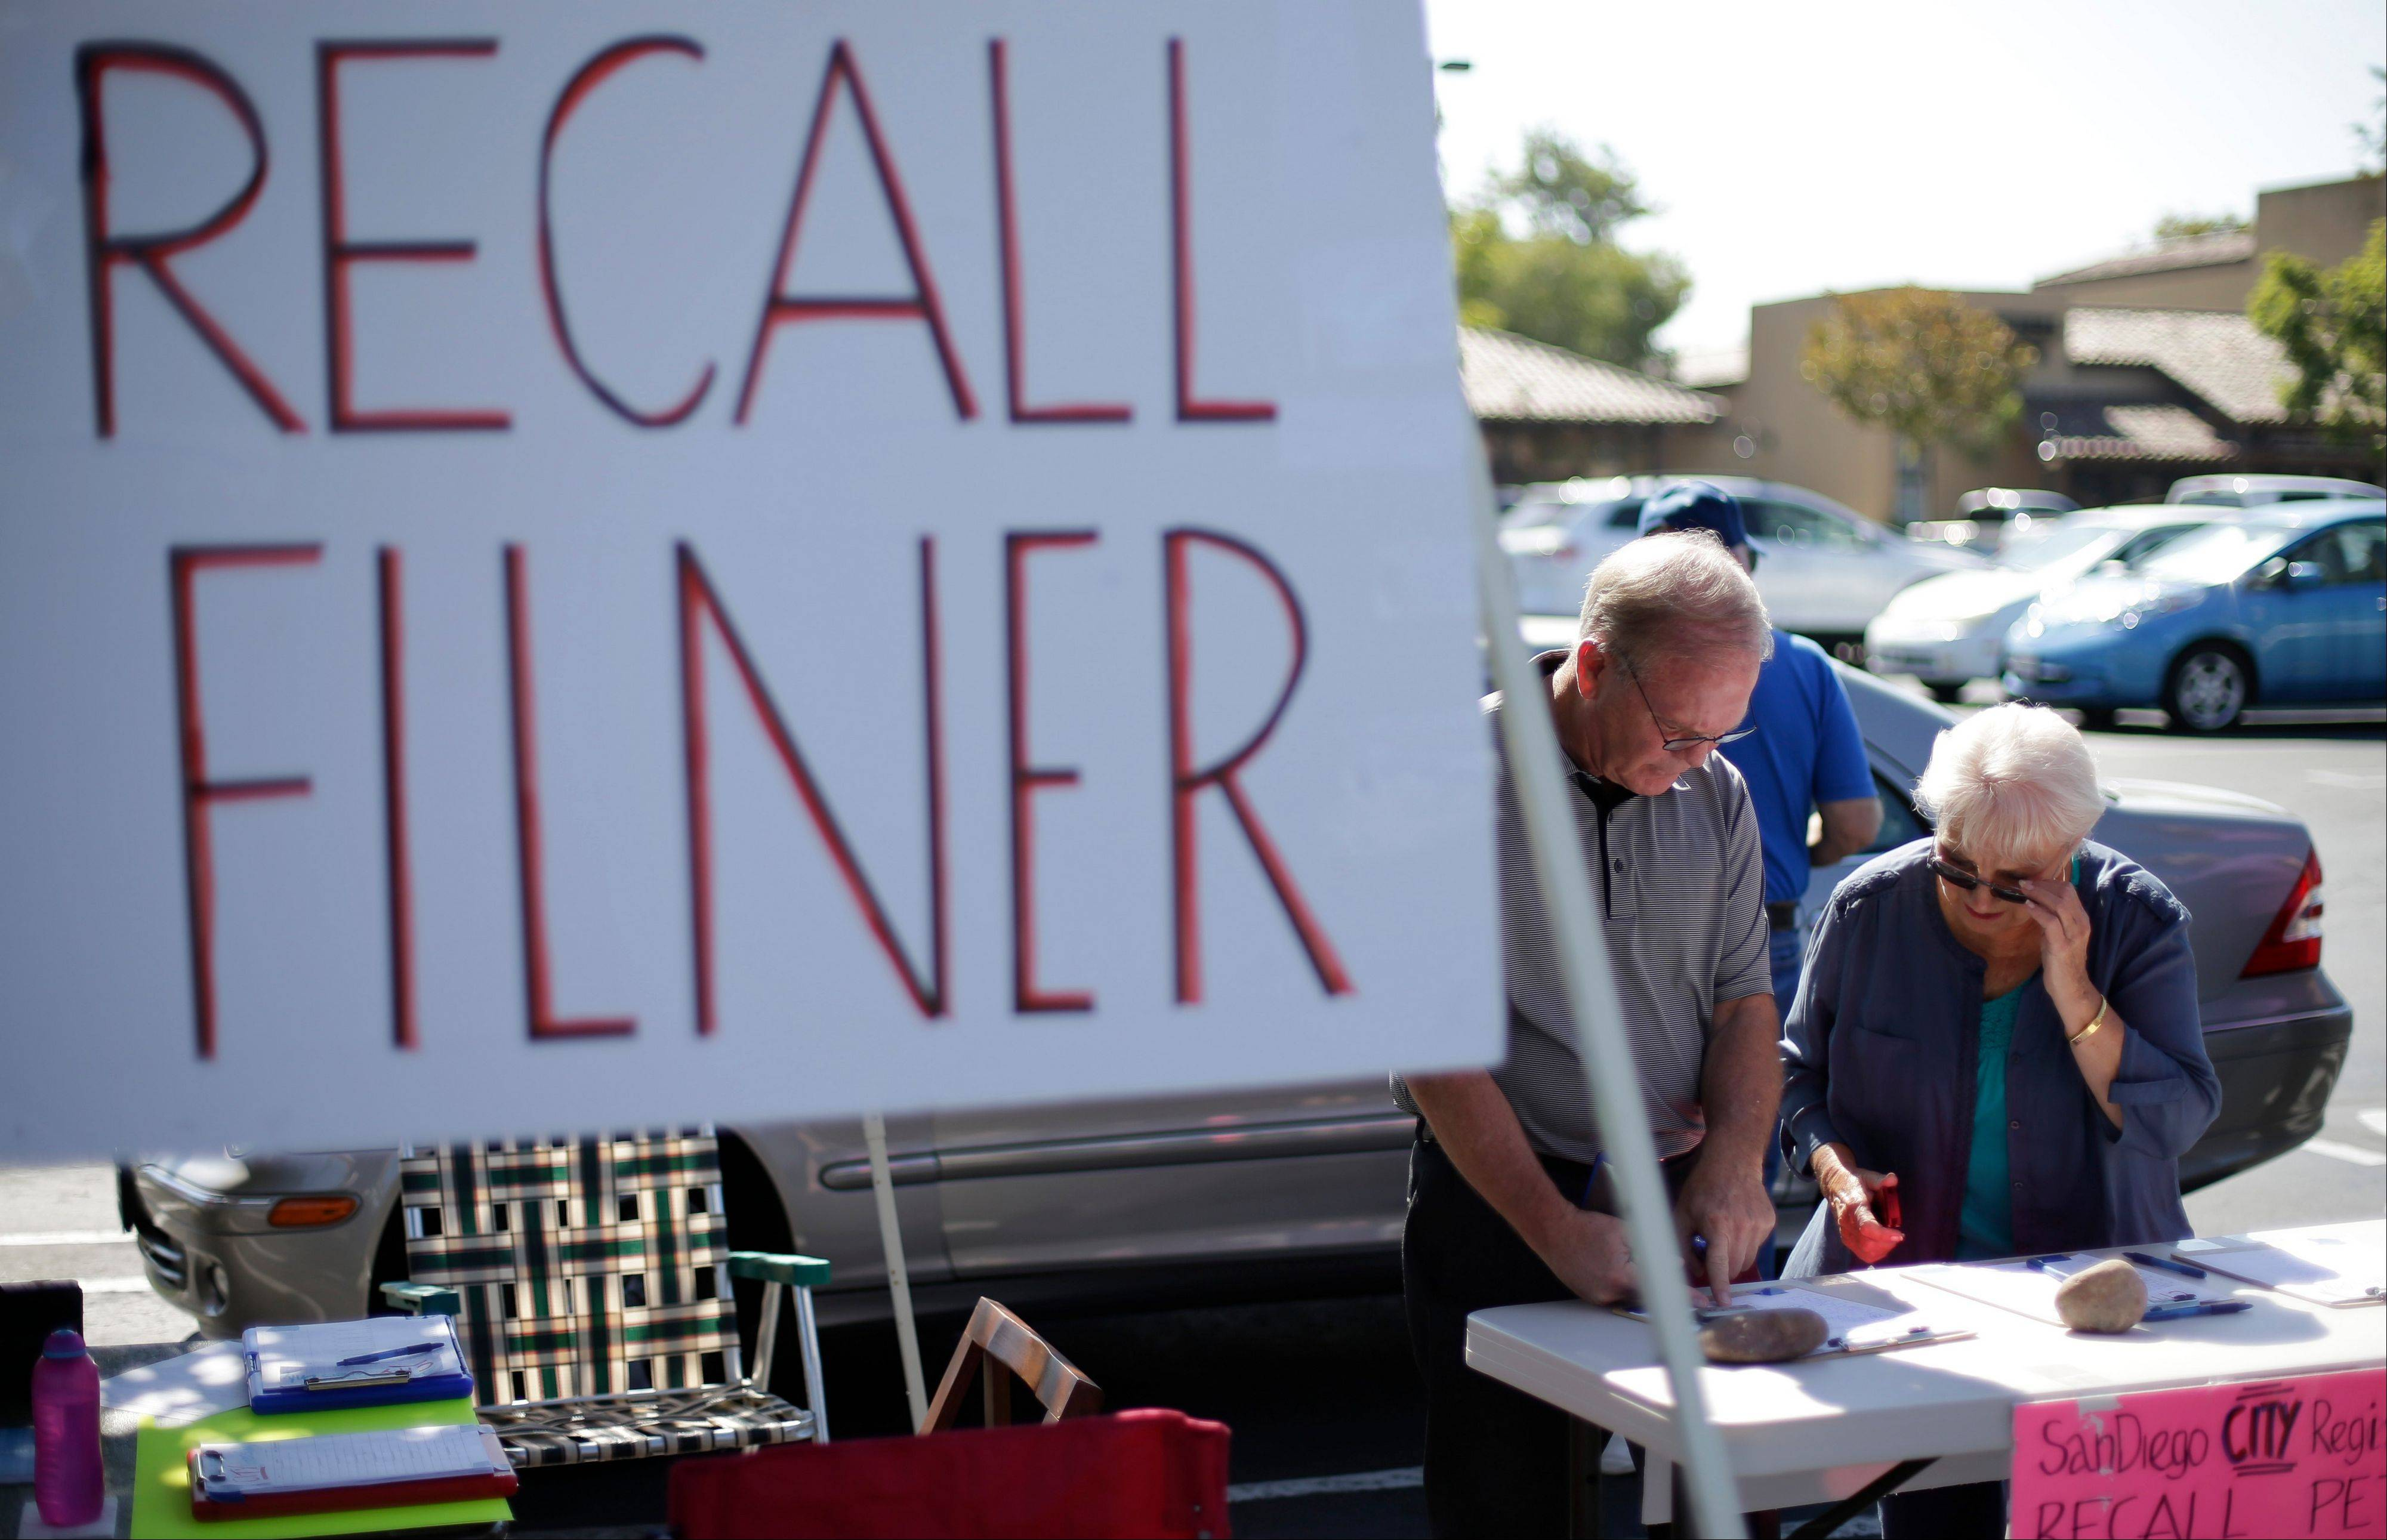 Greg Timms, left, signs a petition to recall San Diego Mayor Bob Filner, alongside Tana Piontek, right, at a stand set up in the parking lot of a shopping center Wednesday, Aug. 21, 2013, in San Diego.